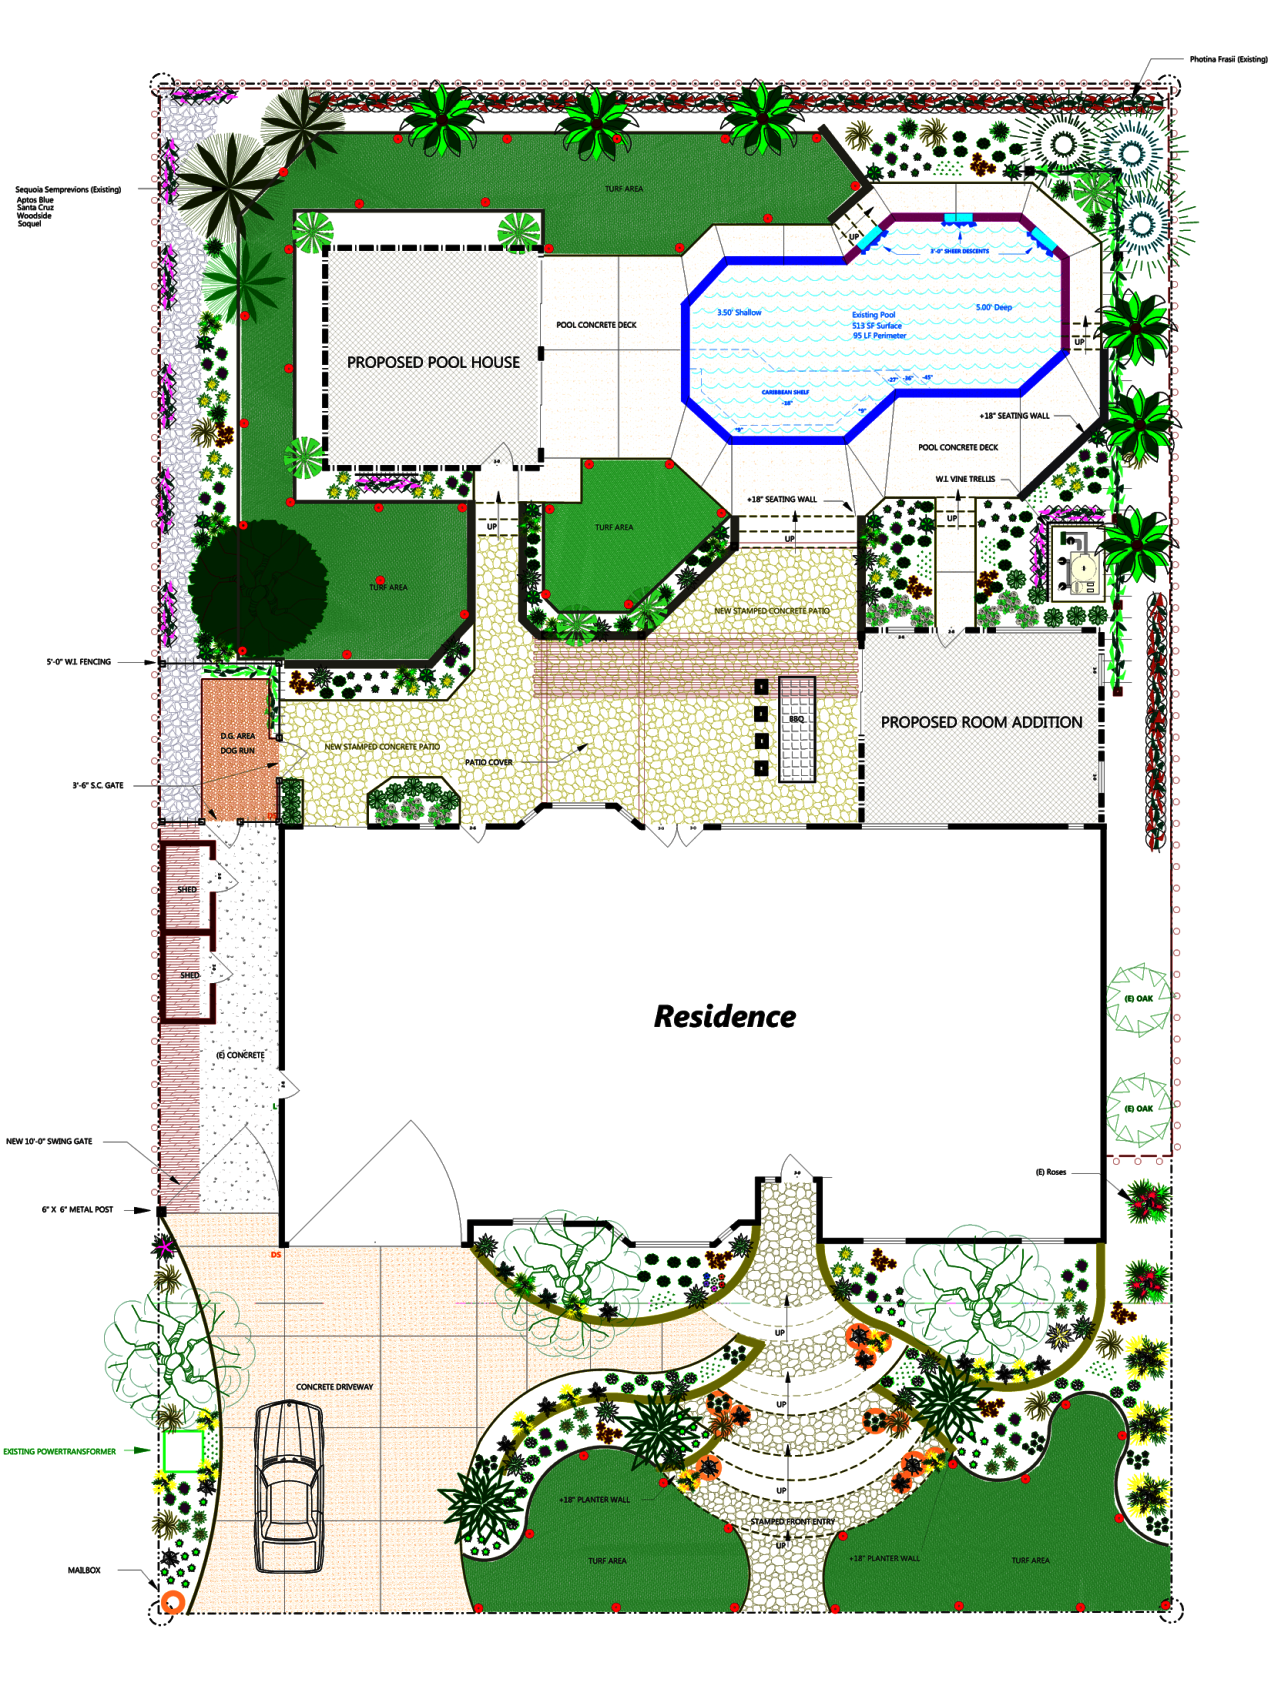 Elk grove landscape architecture 916 630 7665 epoolscapes offers excellent elk grove ca cad design drafting blueprints services throughout california with a multiple generational span of malvernweather Images